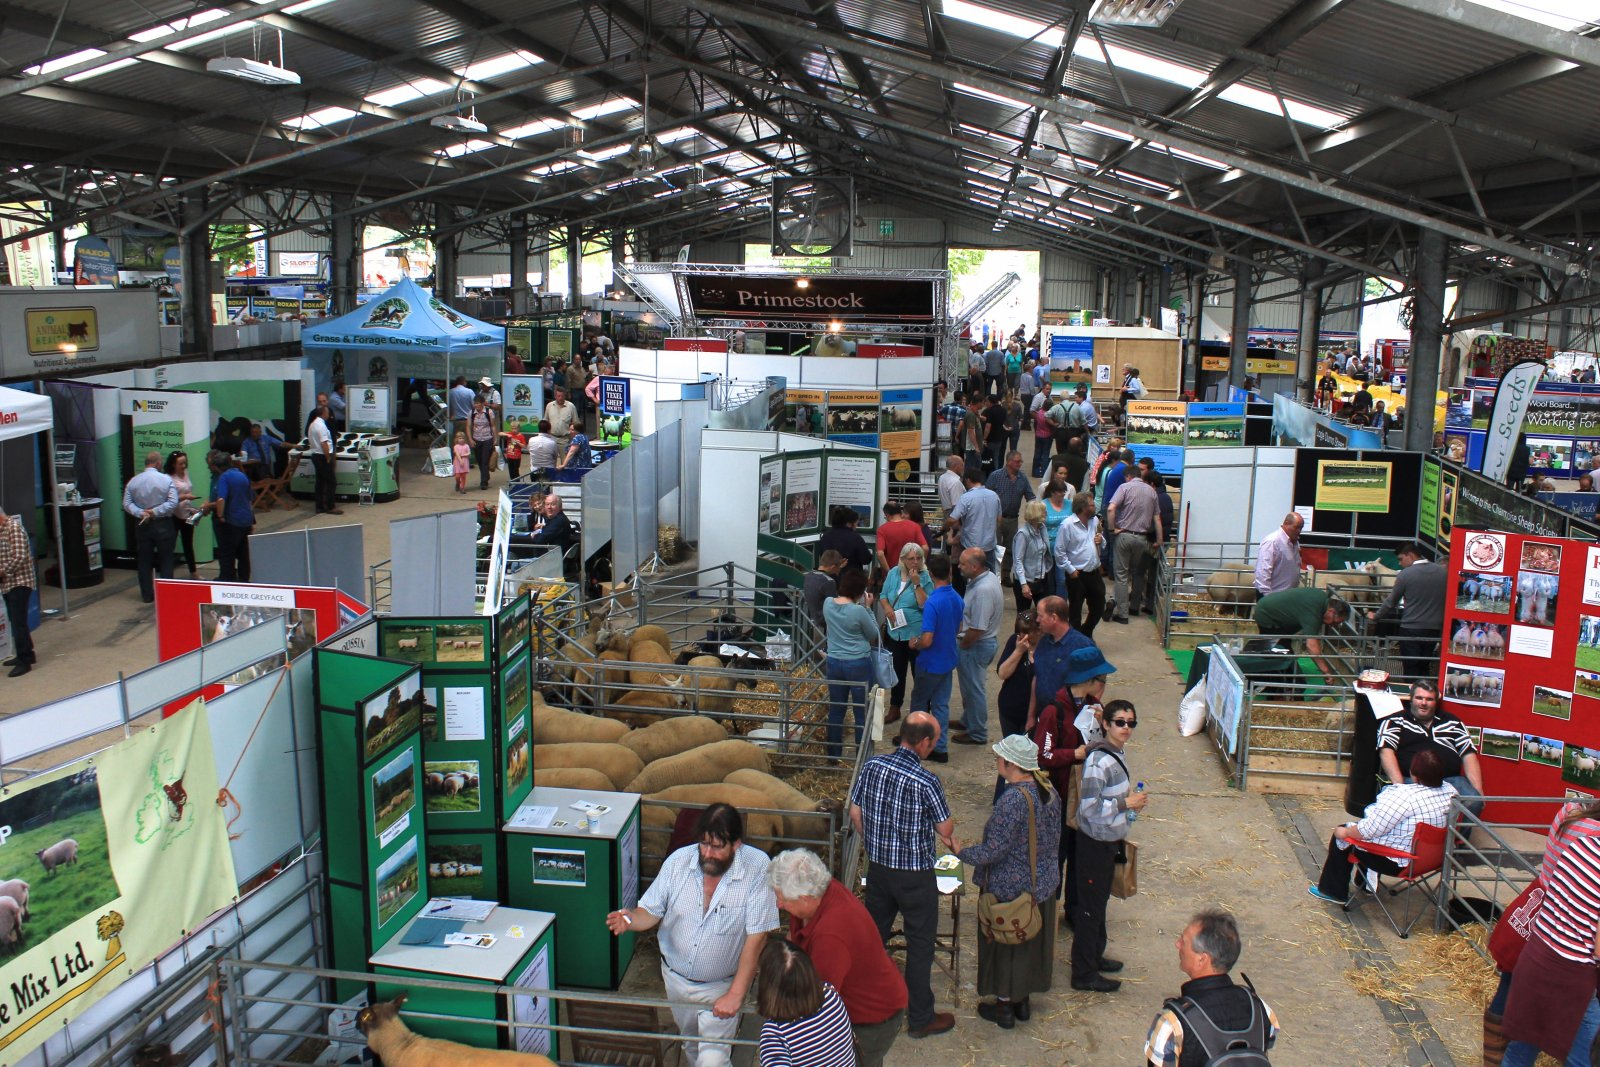 A busy indoor trade stand area at NSA Sheep 2016